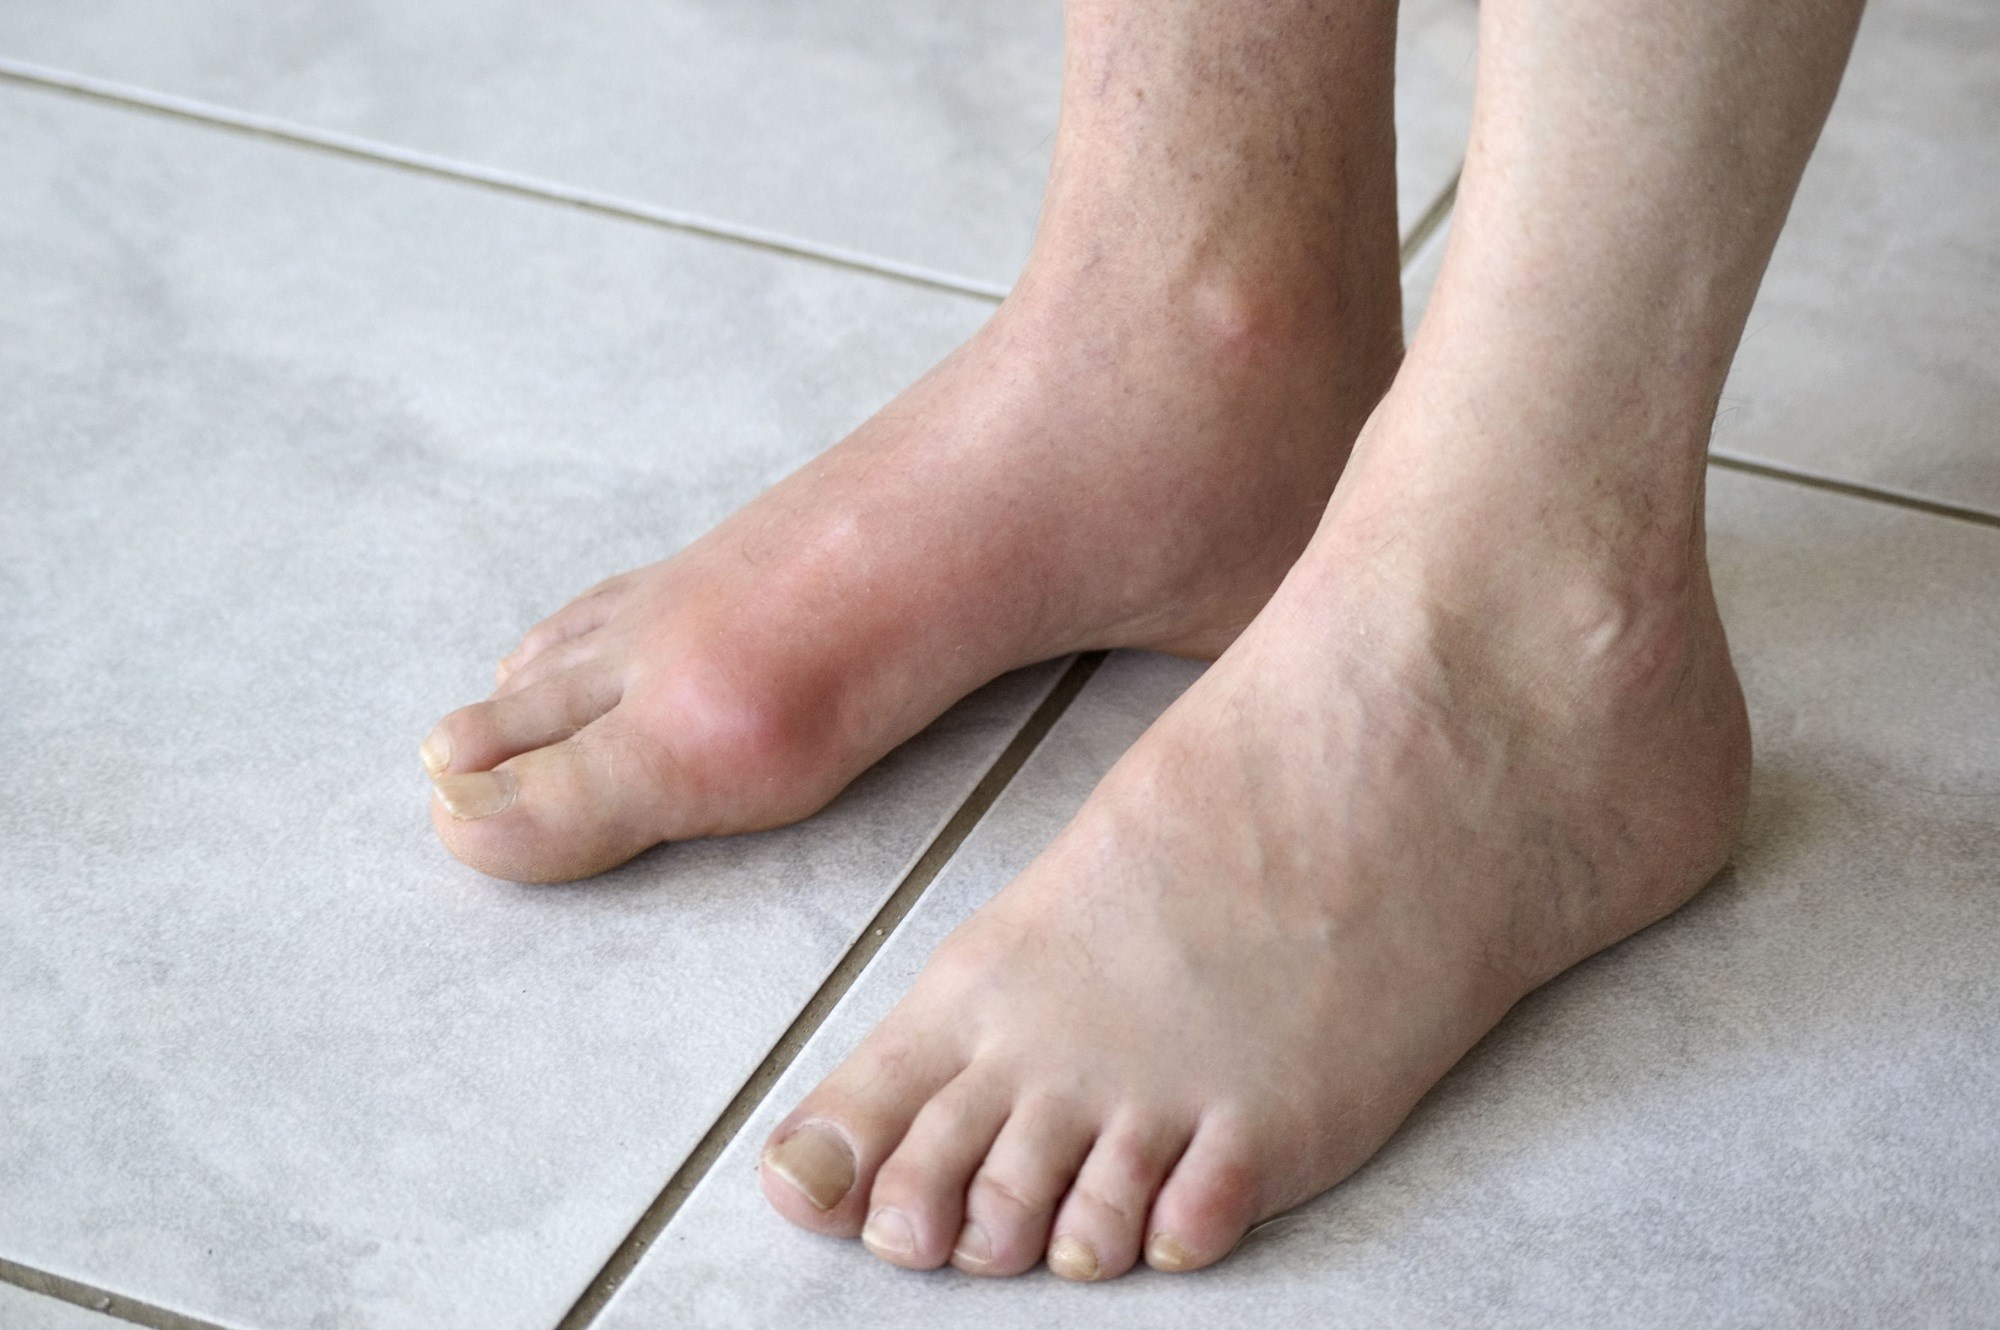 Elevated Ferritin Levels Associated With Risk for Gout, Flare Frequency